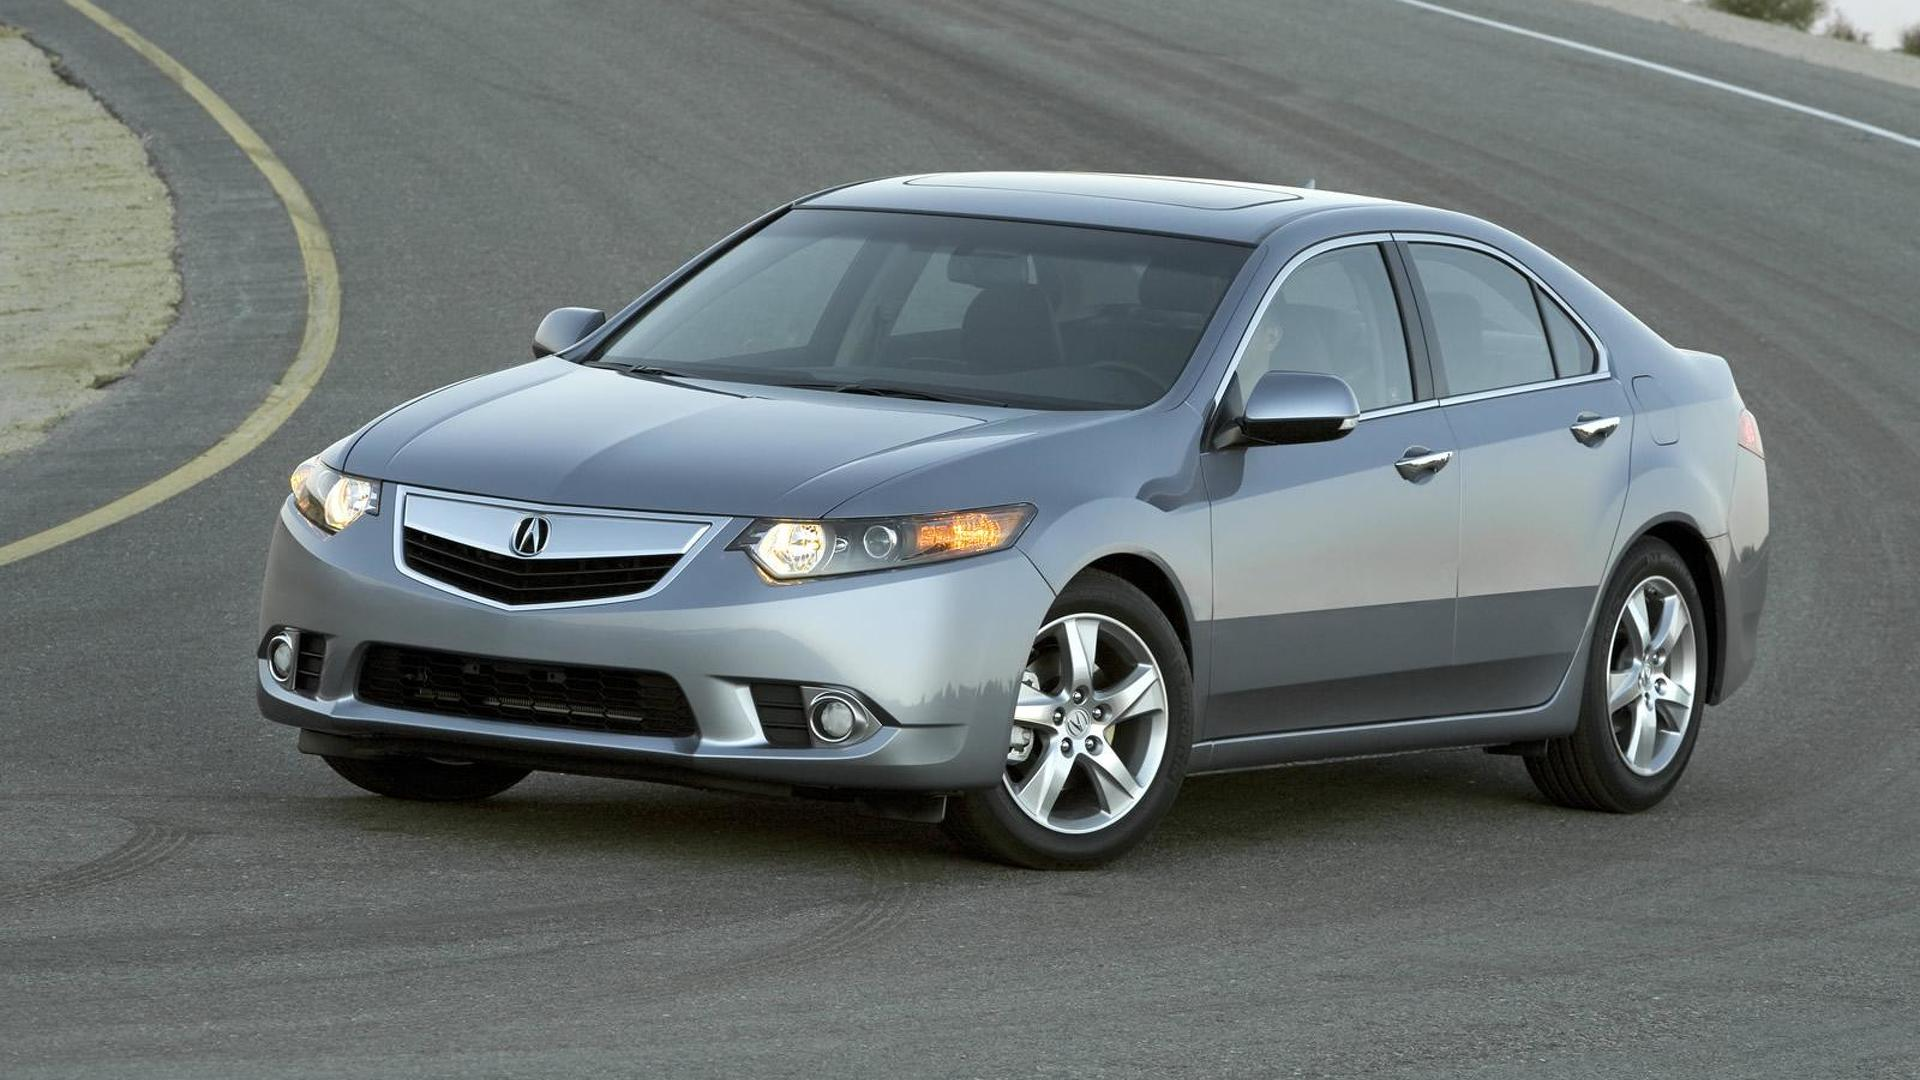 Acura TSX could be axed - report